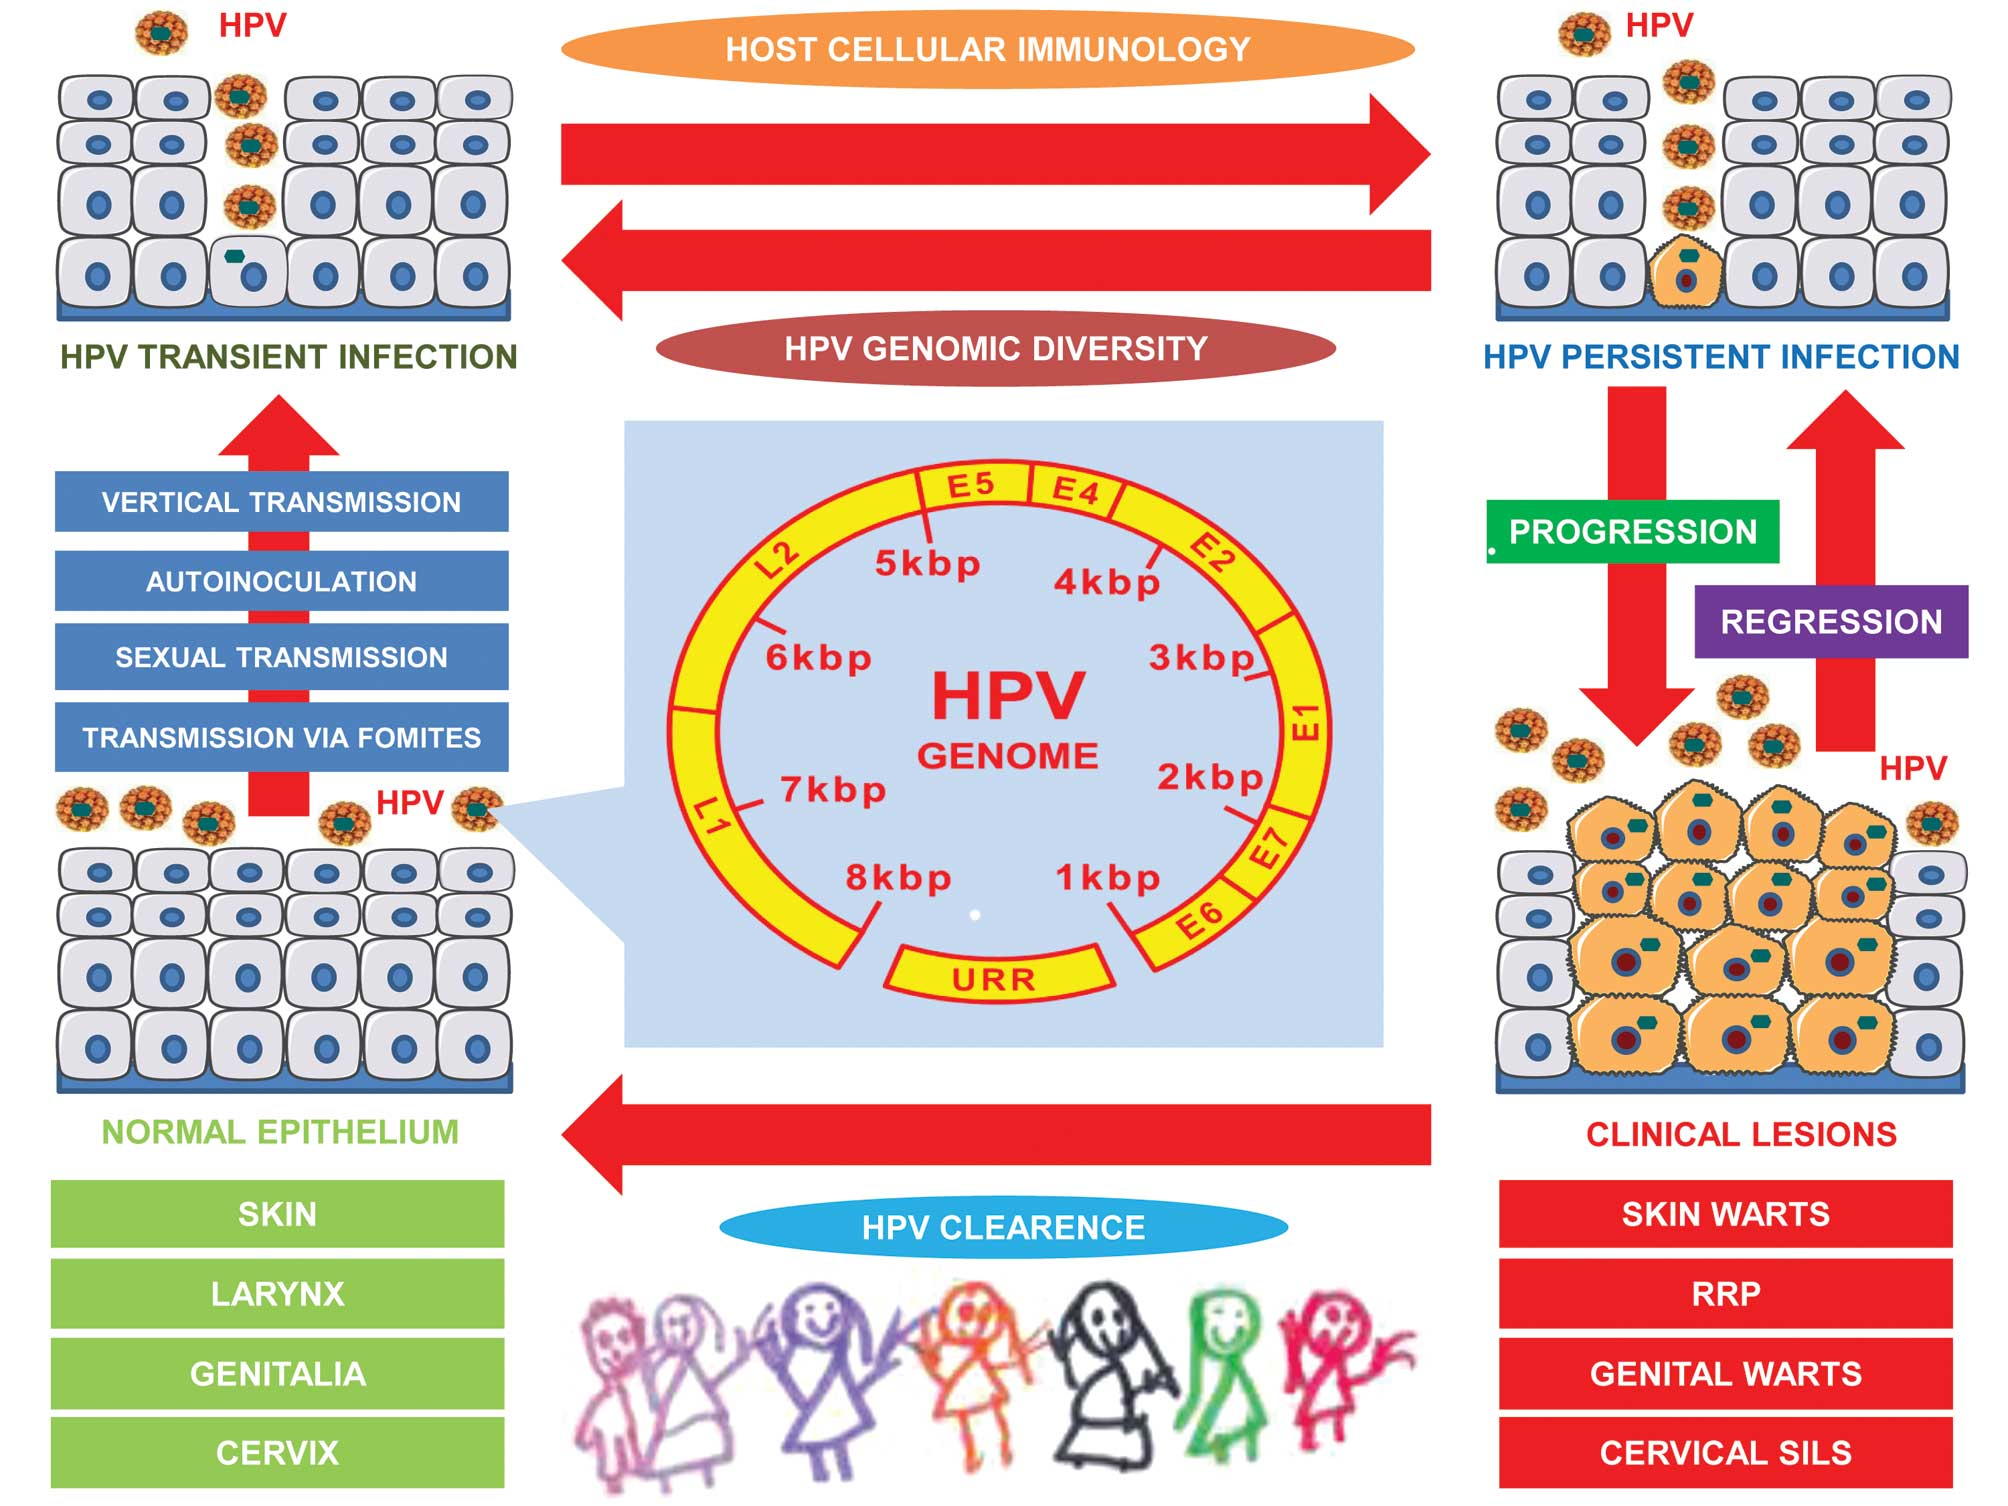 hpv high risk c 02 positive)